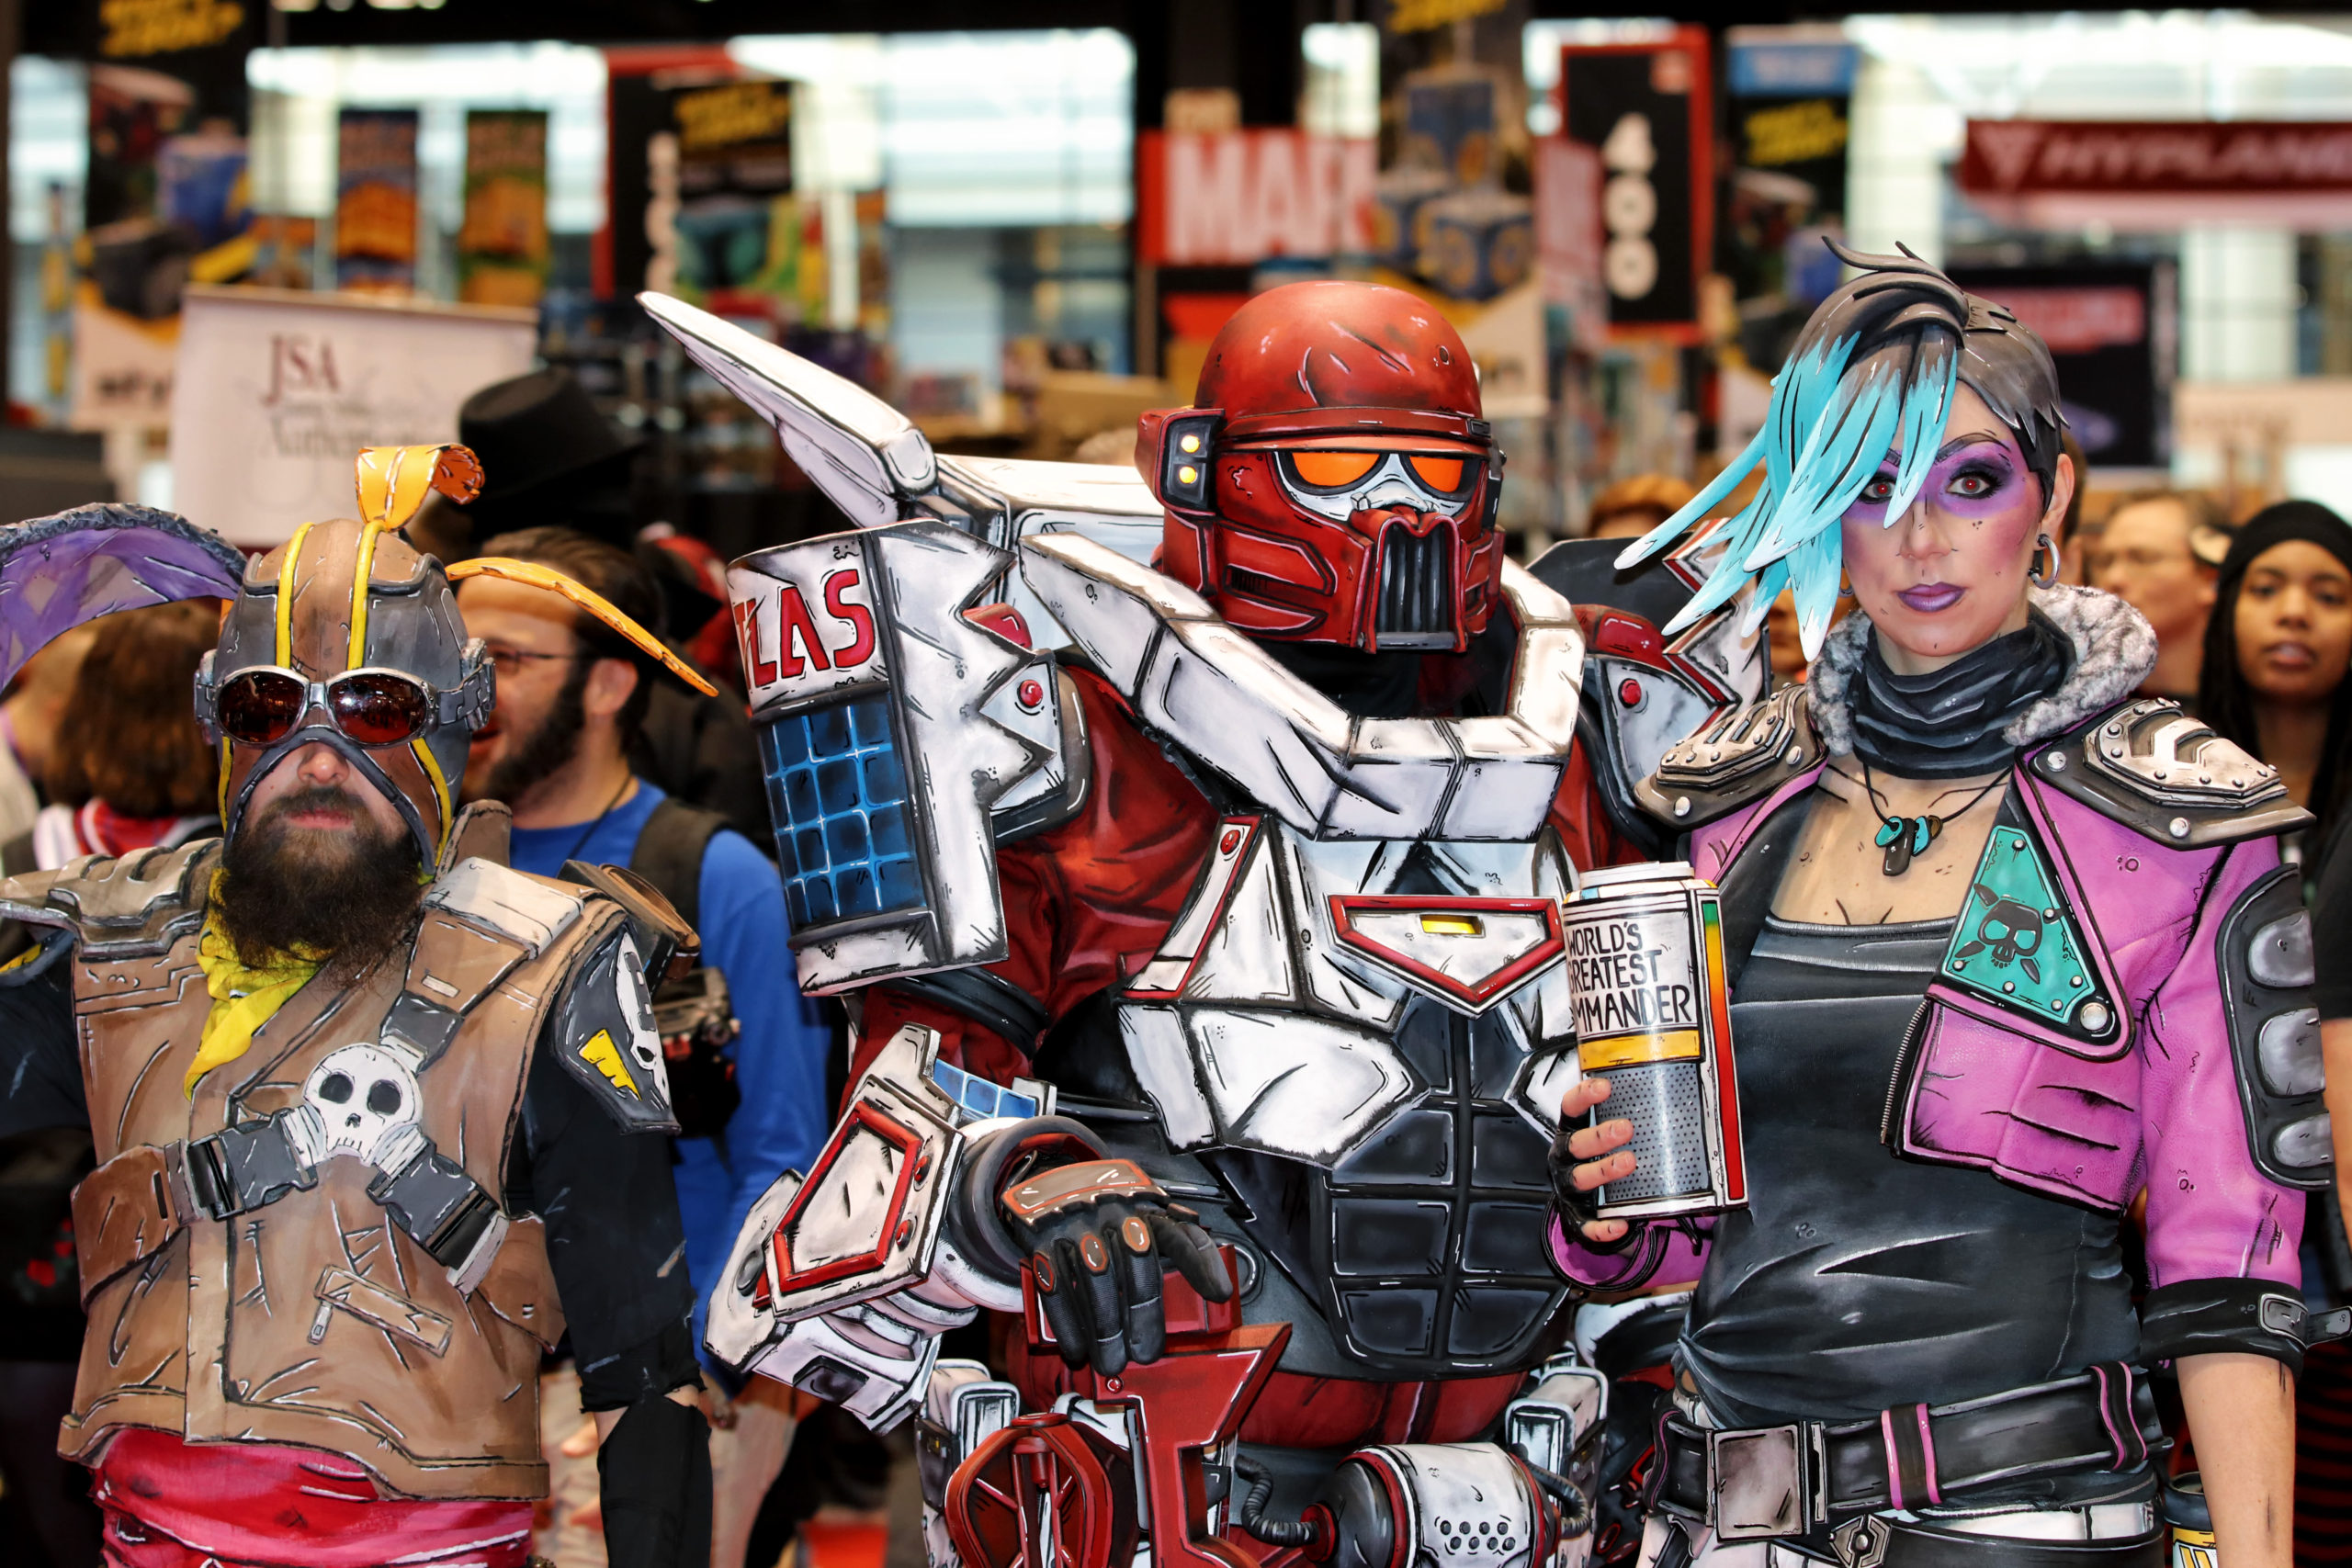 Monsters, aliens, heroes, villains, animals and plain-old comic fans descended on Chicago for another 3-day extravaganza at C2E2